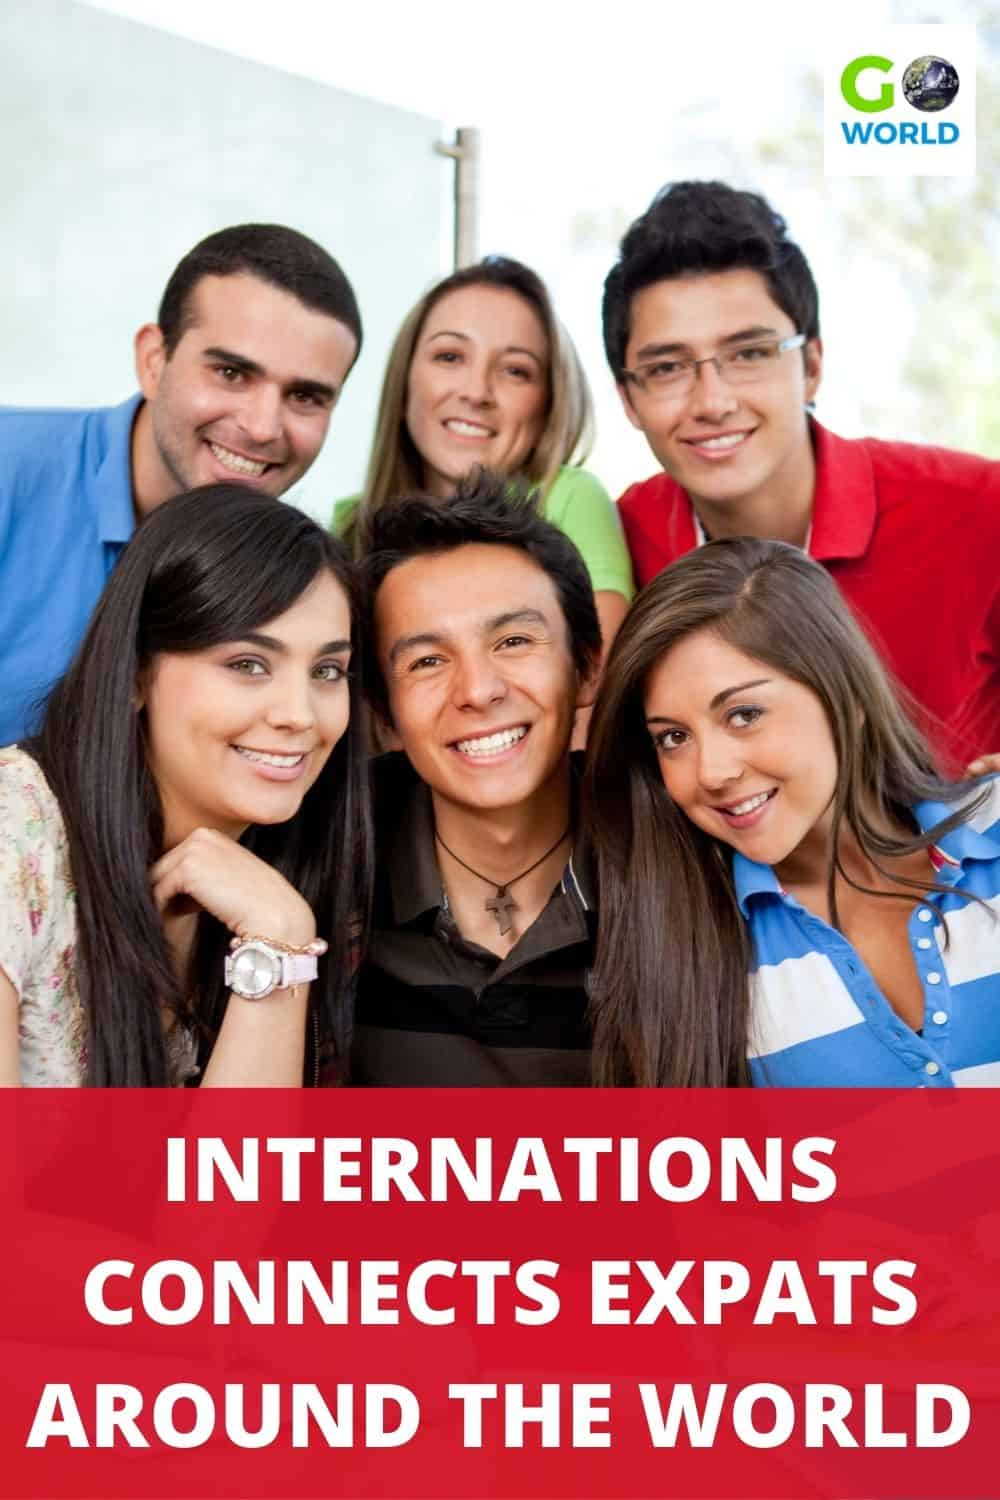 InterNations is a platform that connects expats all around the world. This is the way to meet new friends and learn about your new local area. #Expats #Internationalliving #Livinginternationally